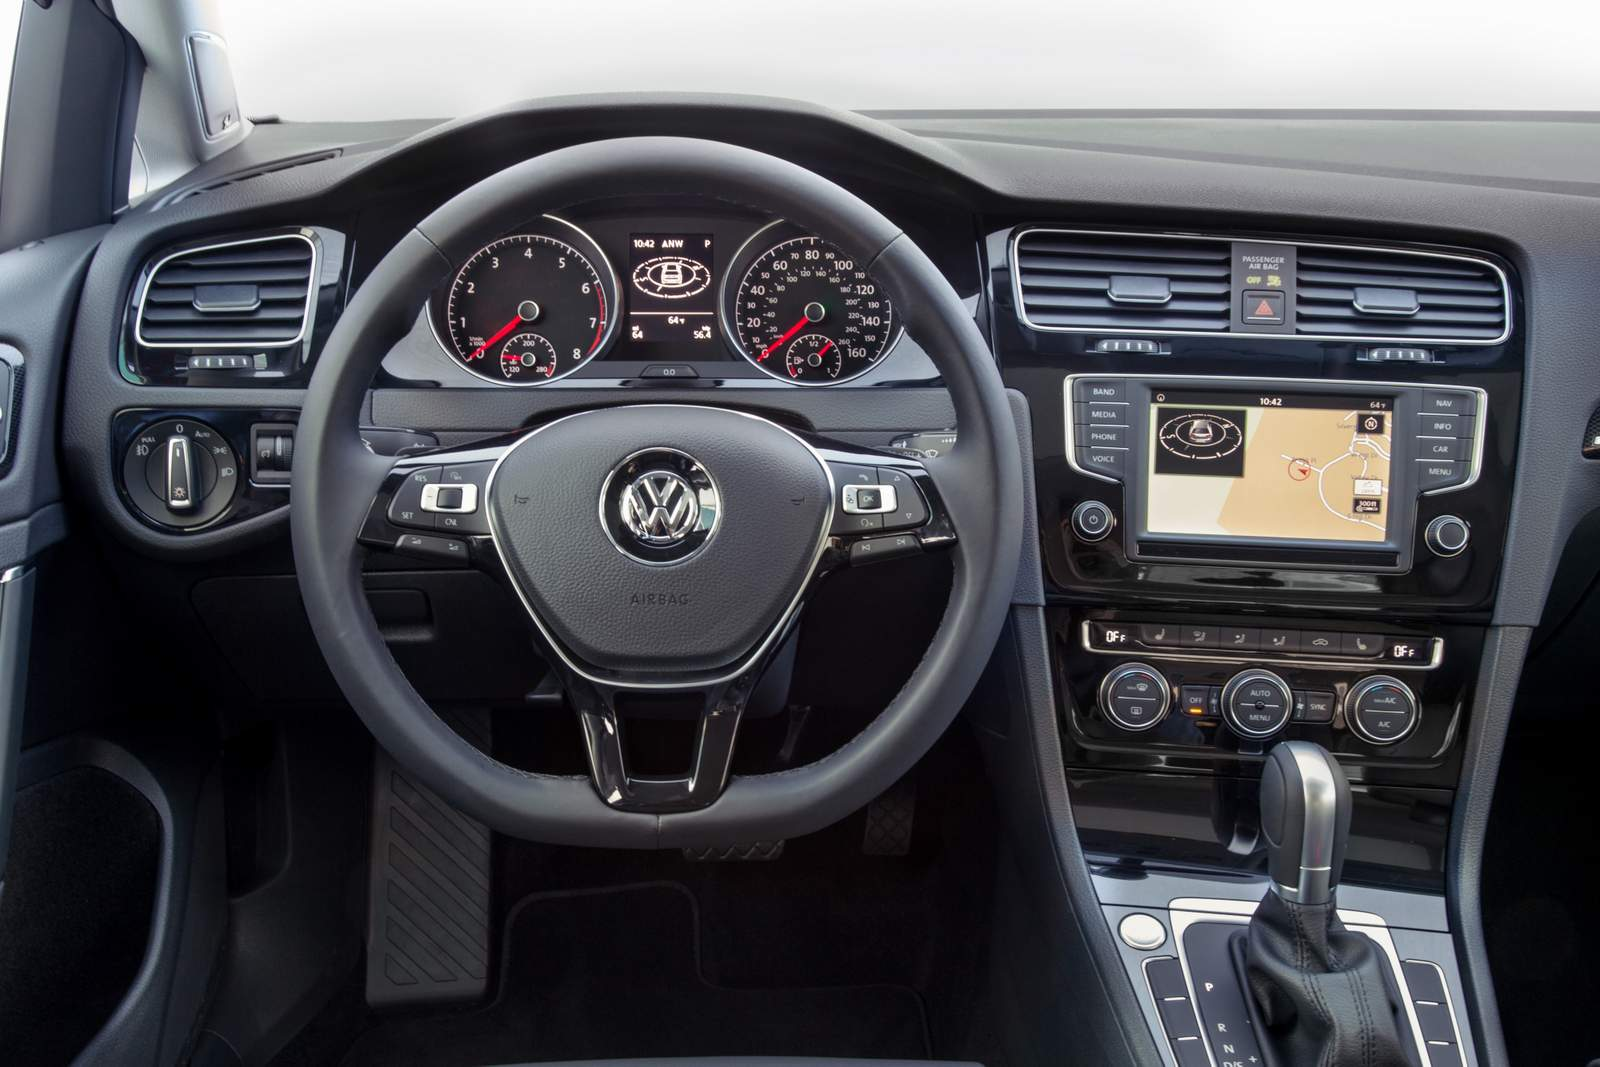 VW Golf 1.4 TSI Flex Automático 2016 - interior